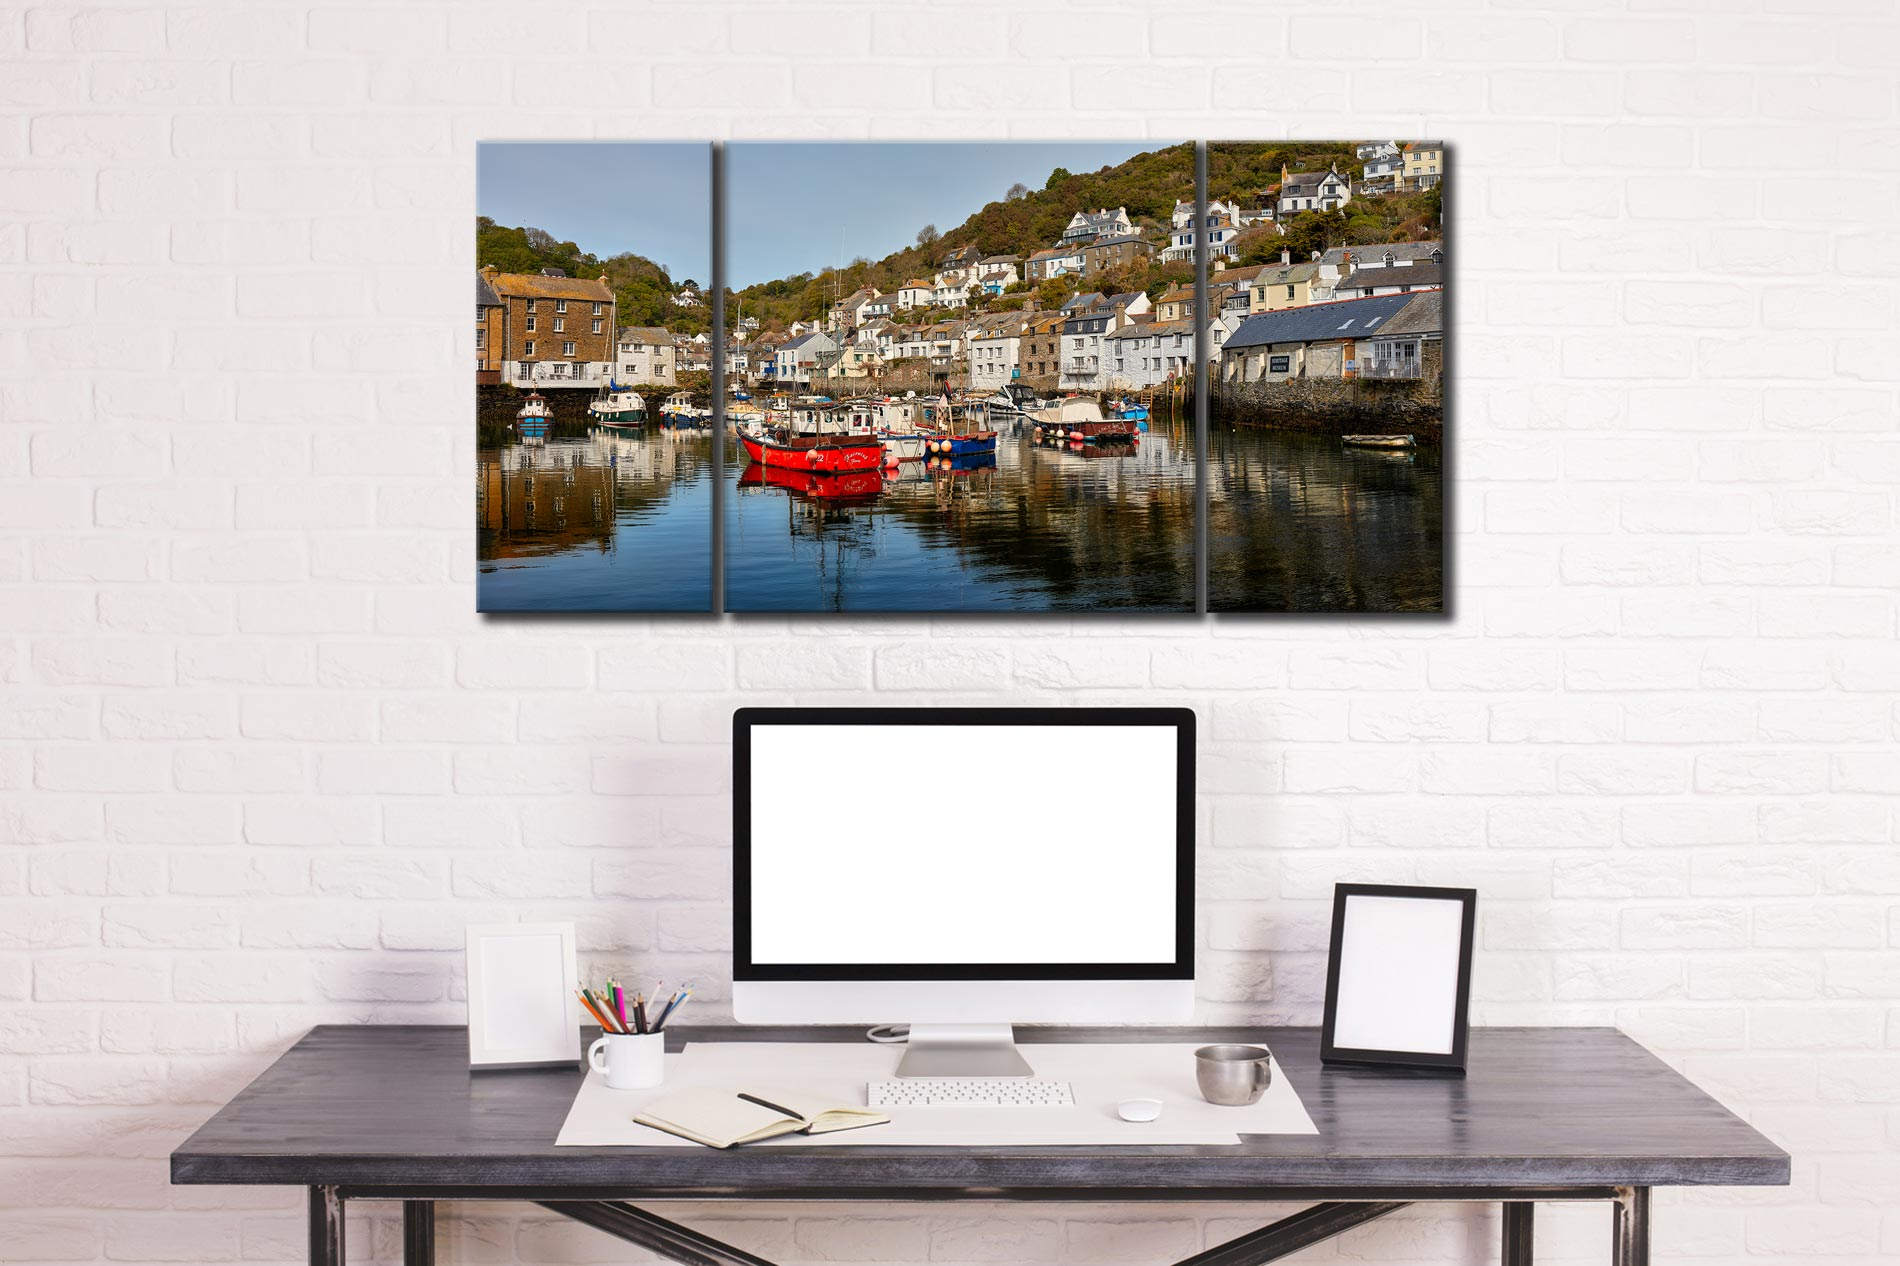 Polperro Harbour - 3 Panel Wide Centre Canvas on Wall